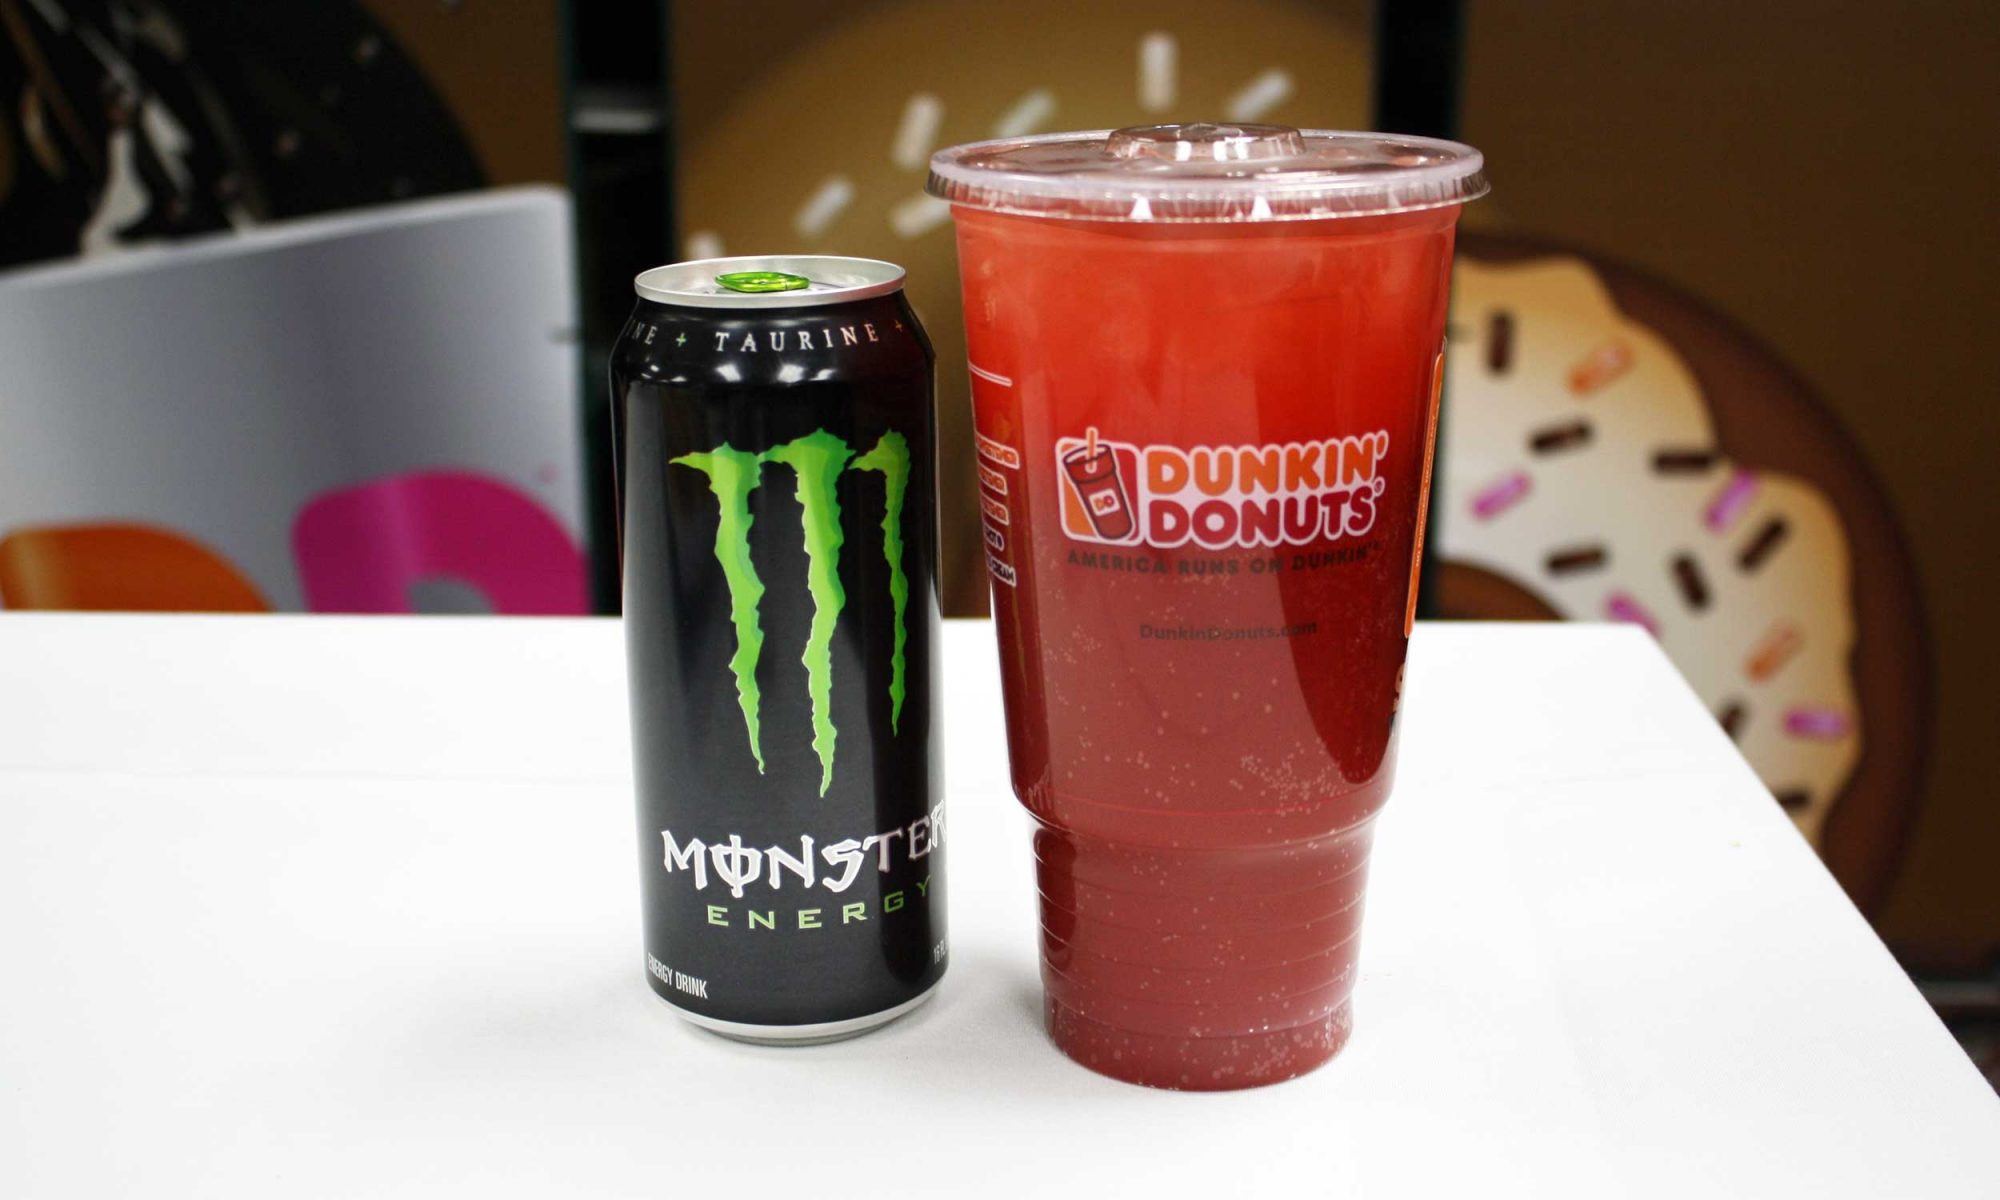 EC: This New Dunkin' Donuts Drink Is Just a Monster Energy Drink and a Coolatta